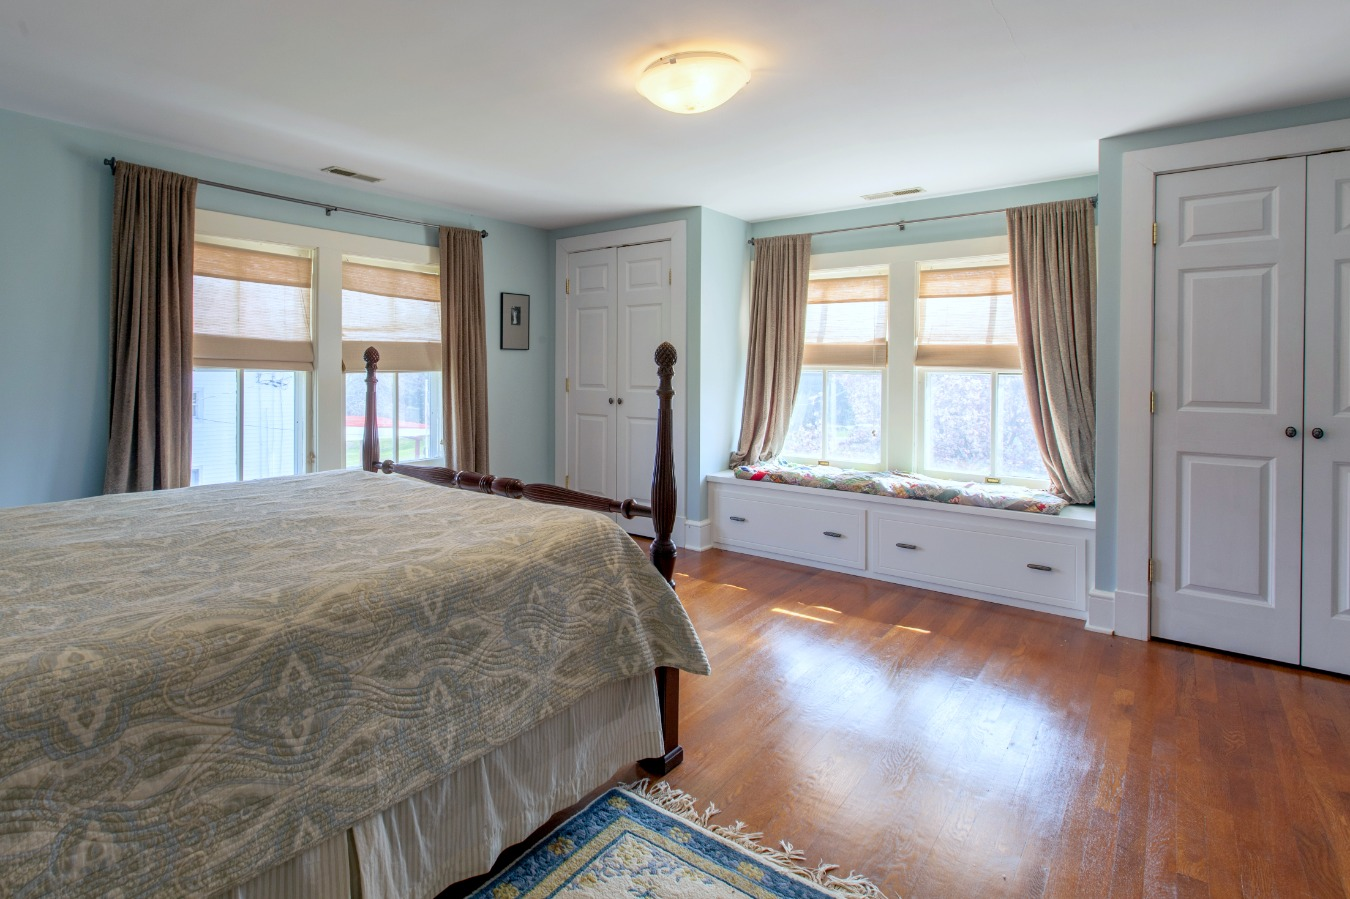 Master Bedroom w/ double closets and window seat